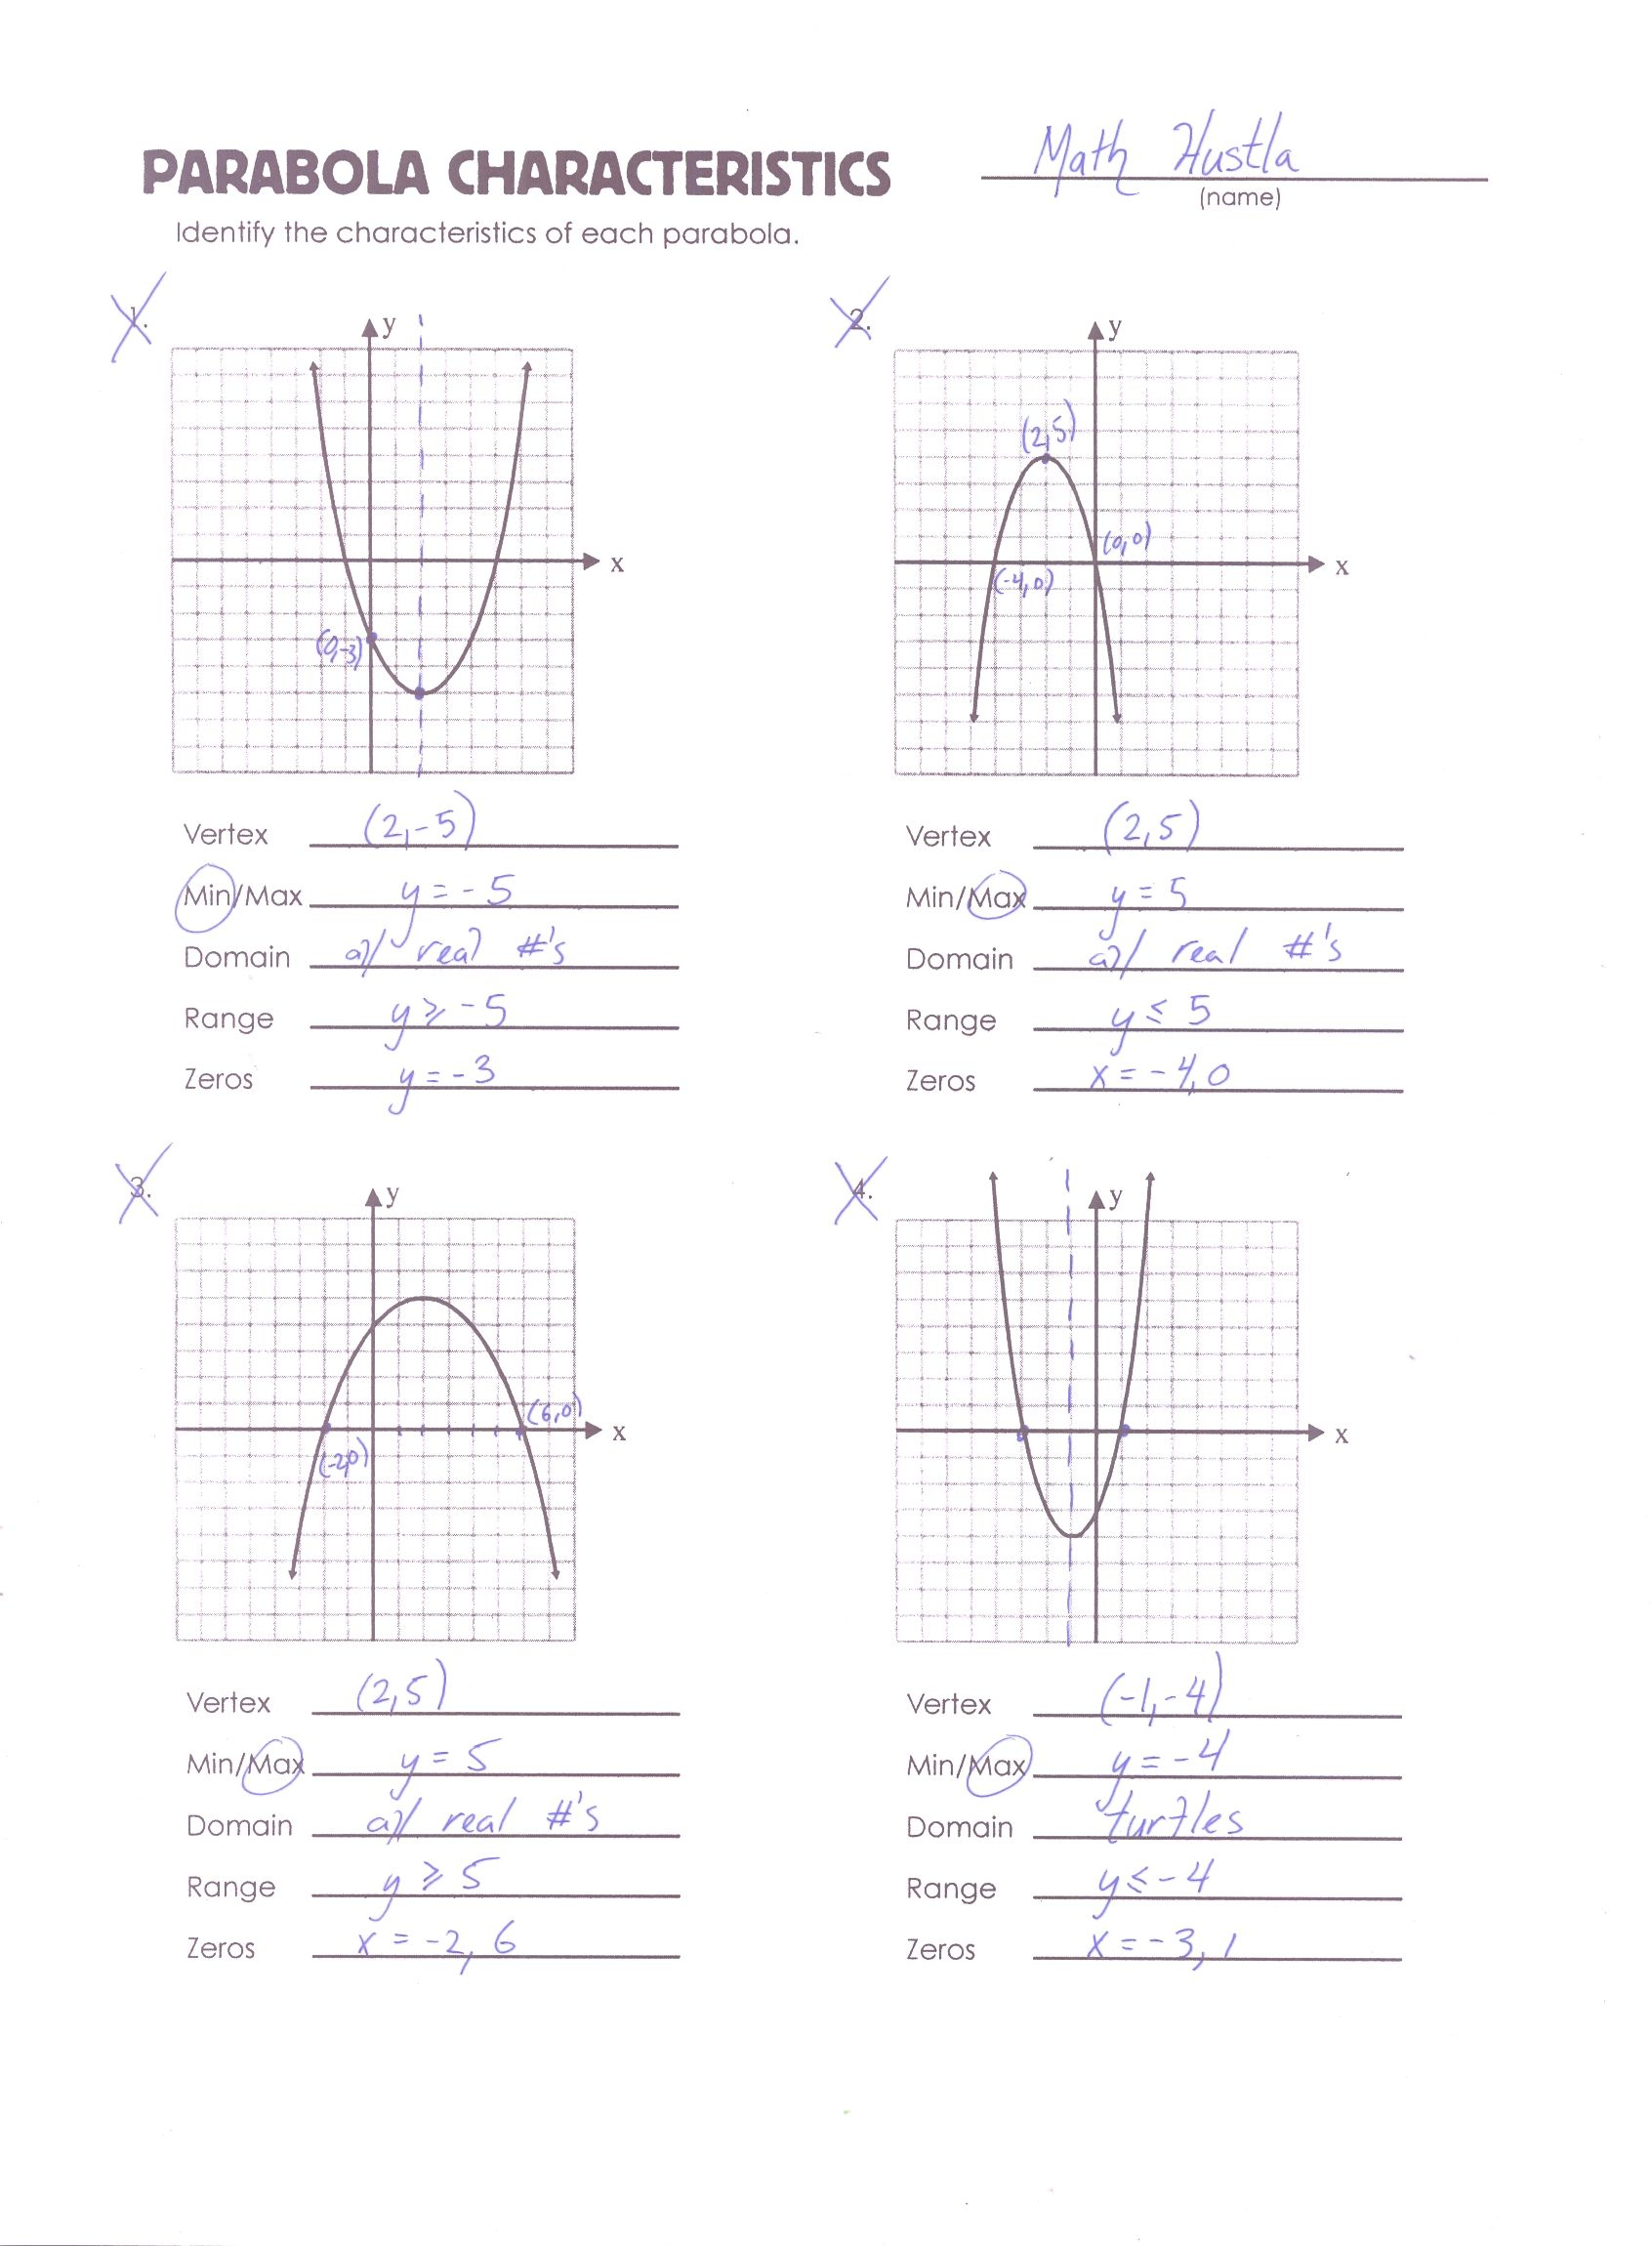 worksheet Parabola Worksheet parabola review worksheet worksheets math and algebra characteristics in addition to the blank there is a completed